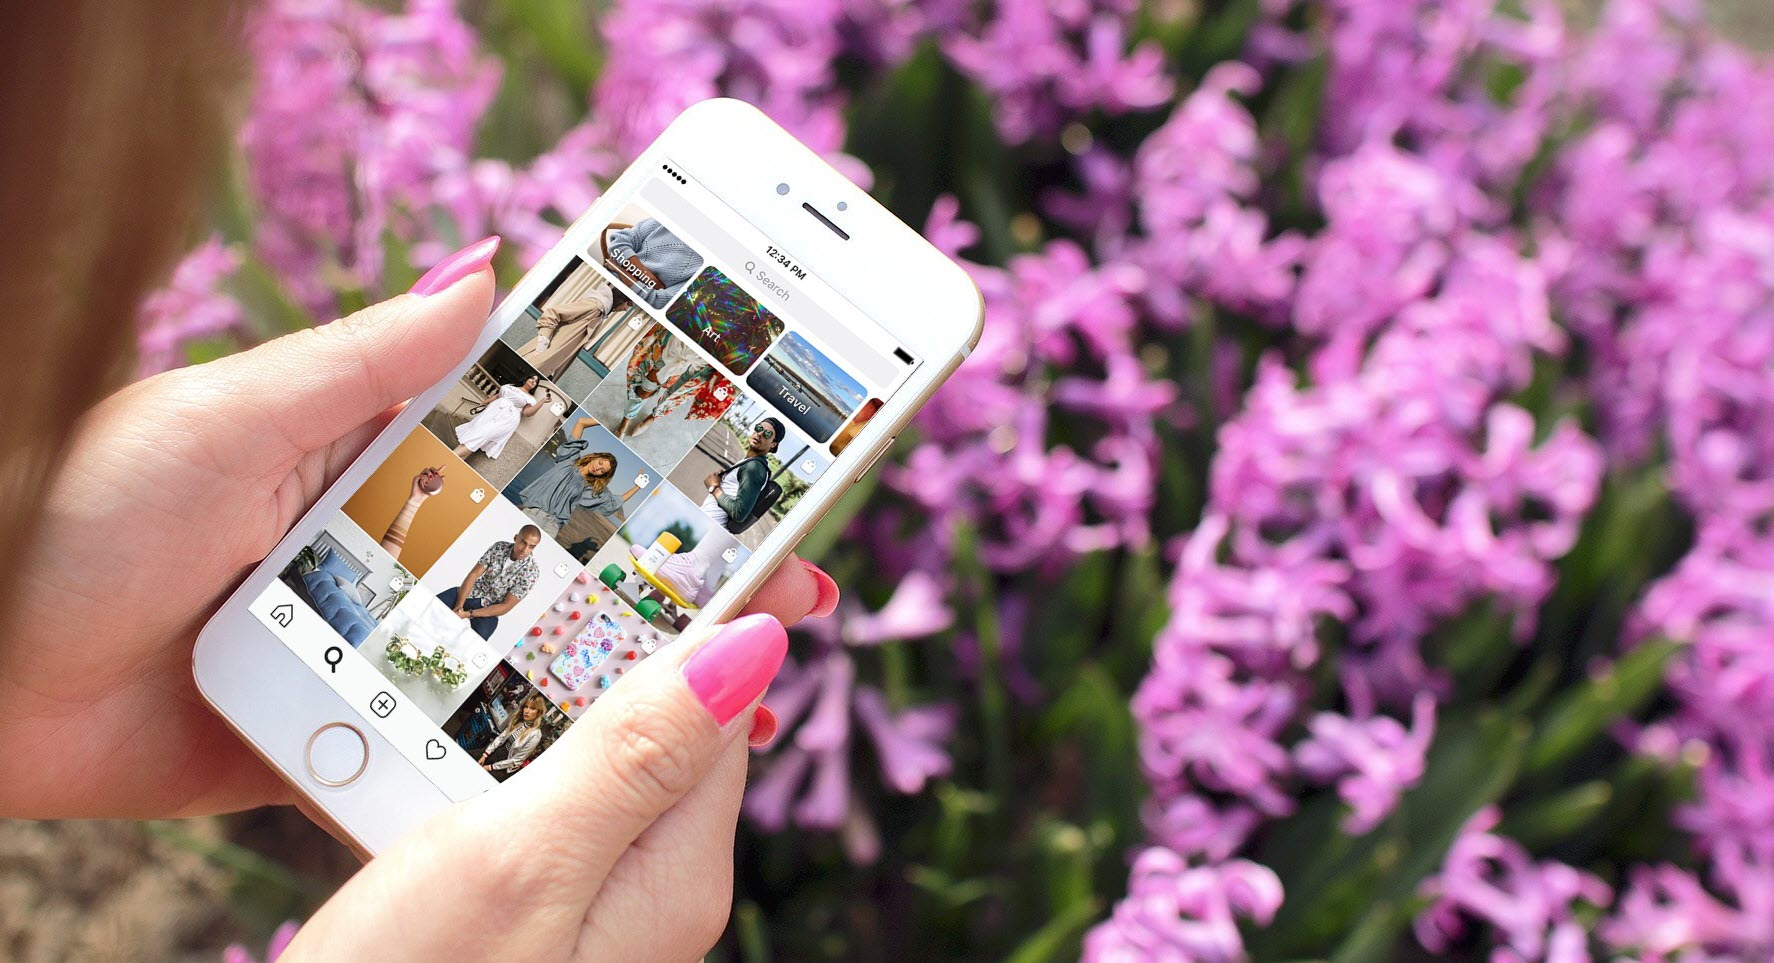 Instagram brings two new updates for shoppers on the app